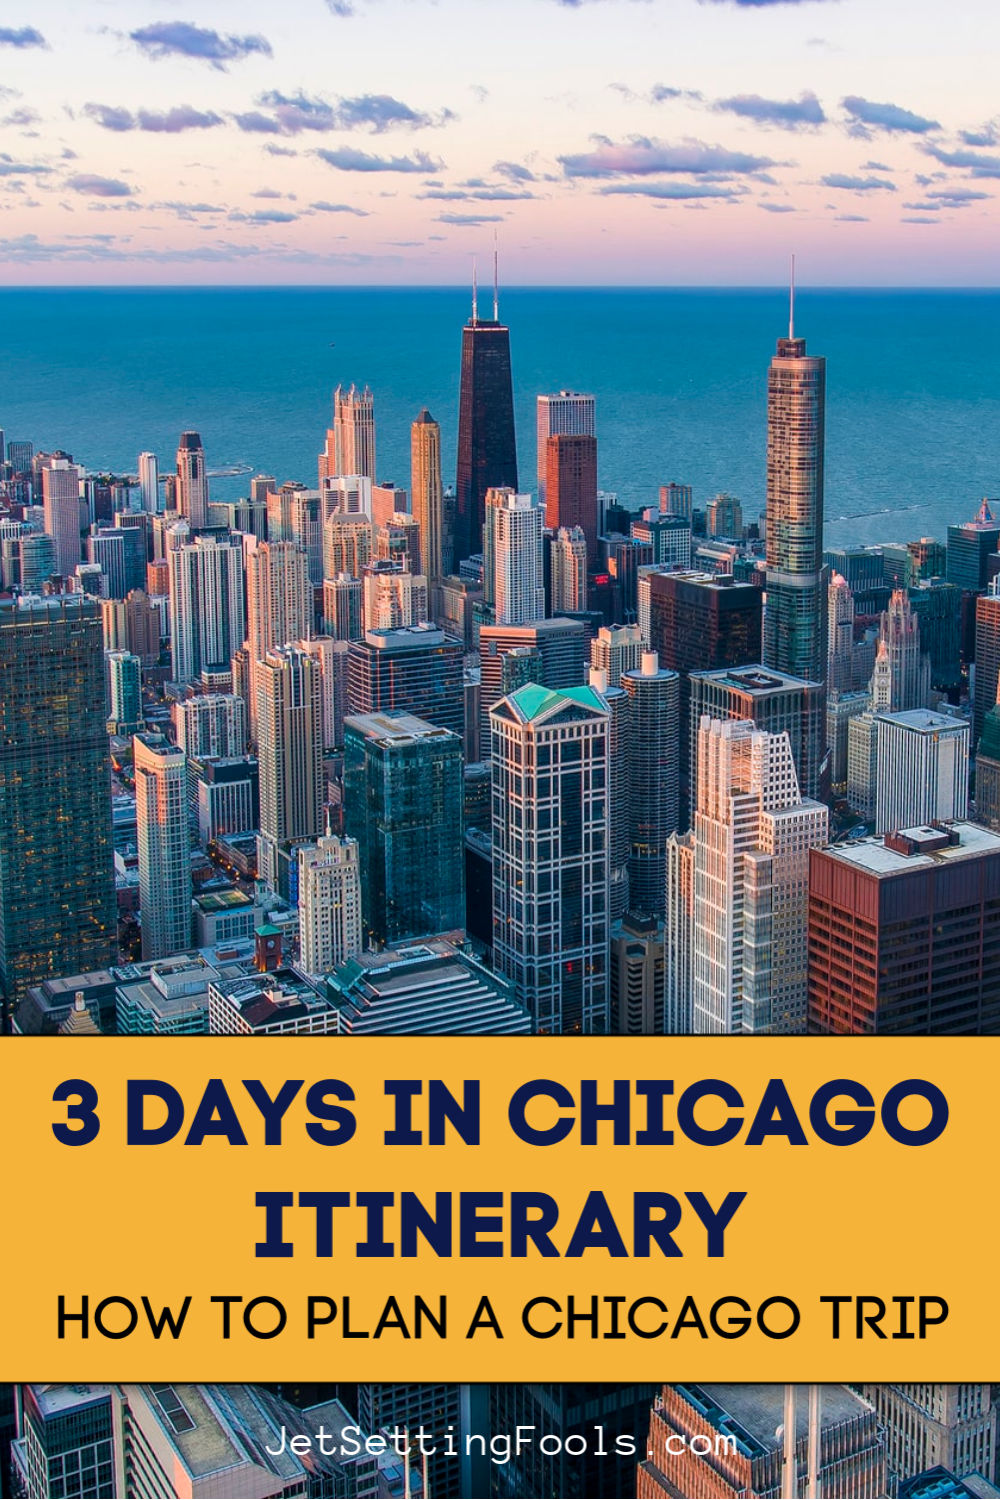 3 Days in Chicago Itinerary Plan a Chicago Trip by JetSettingFools.com